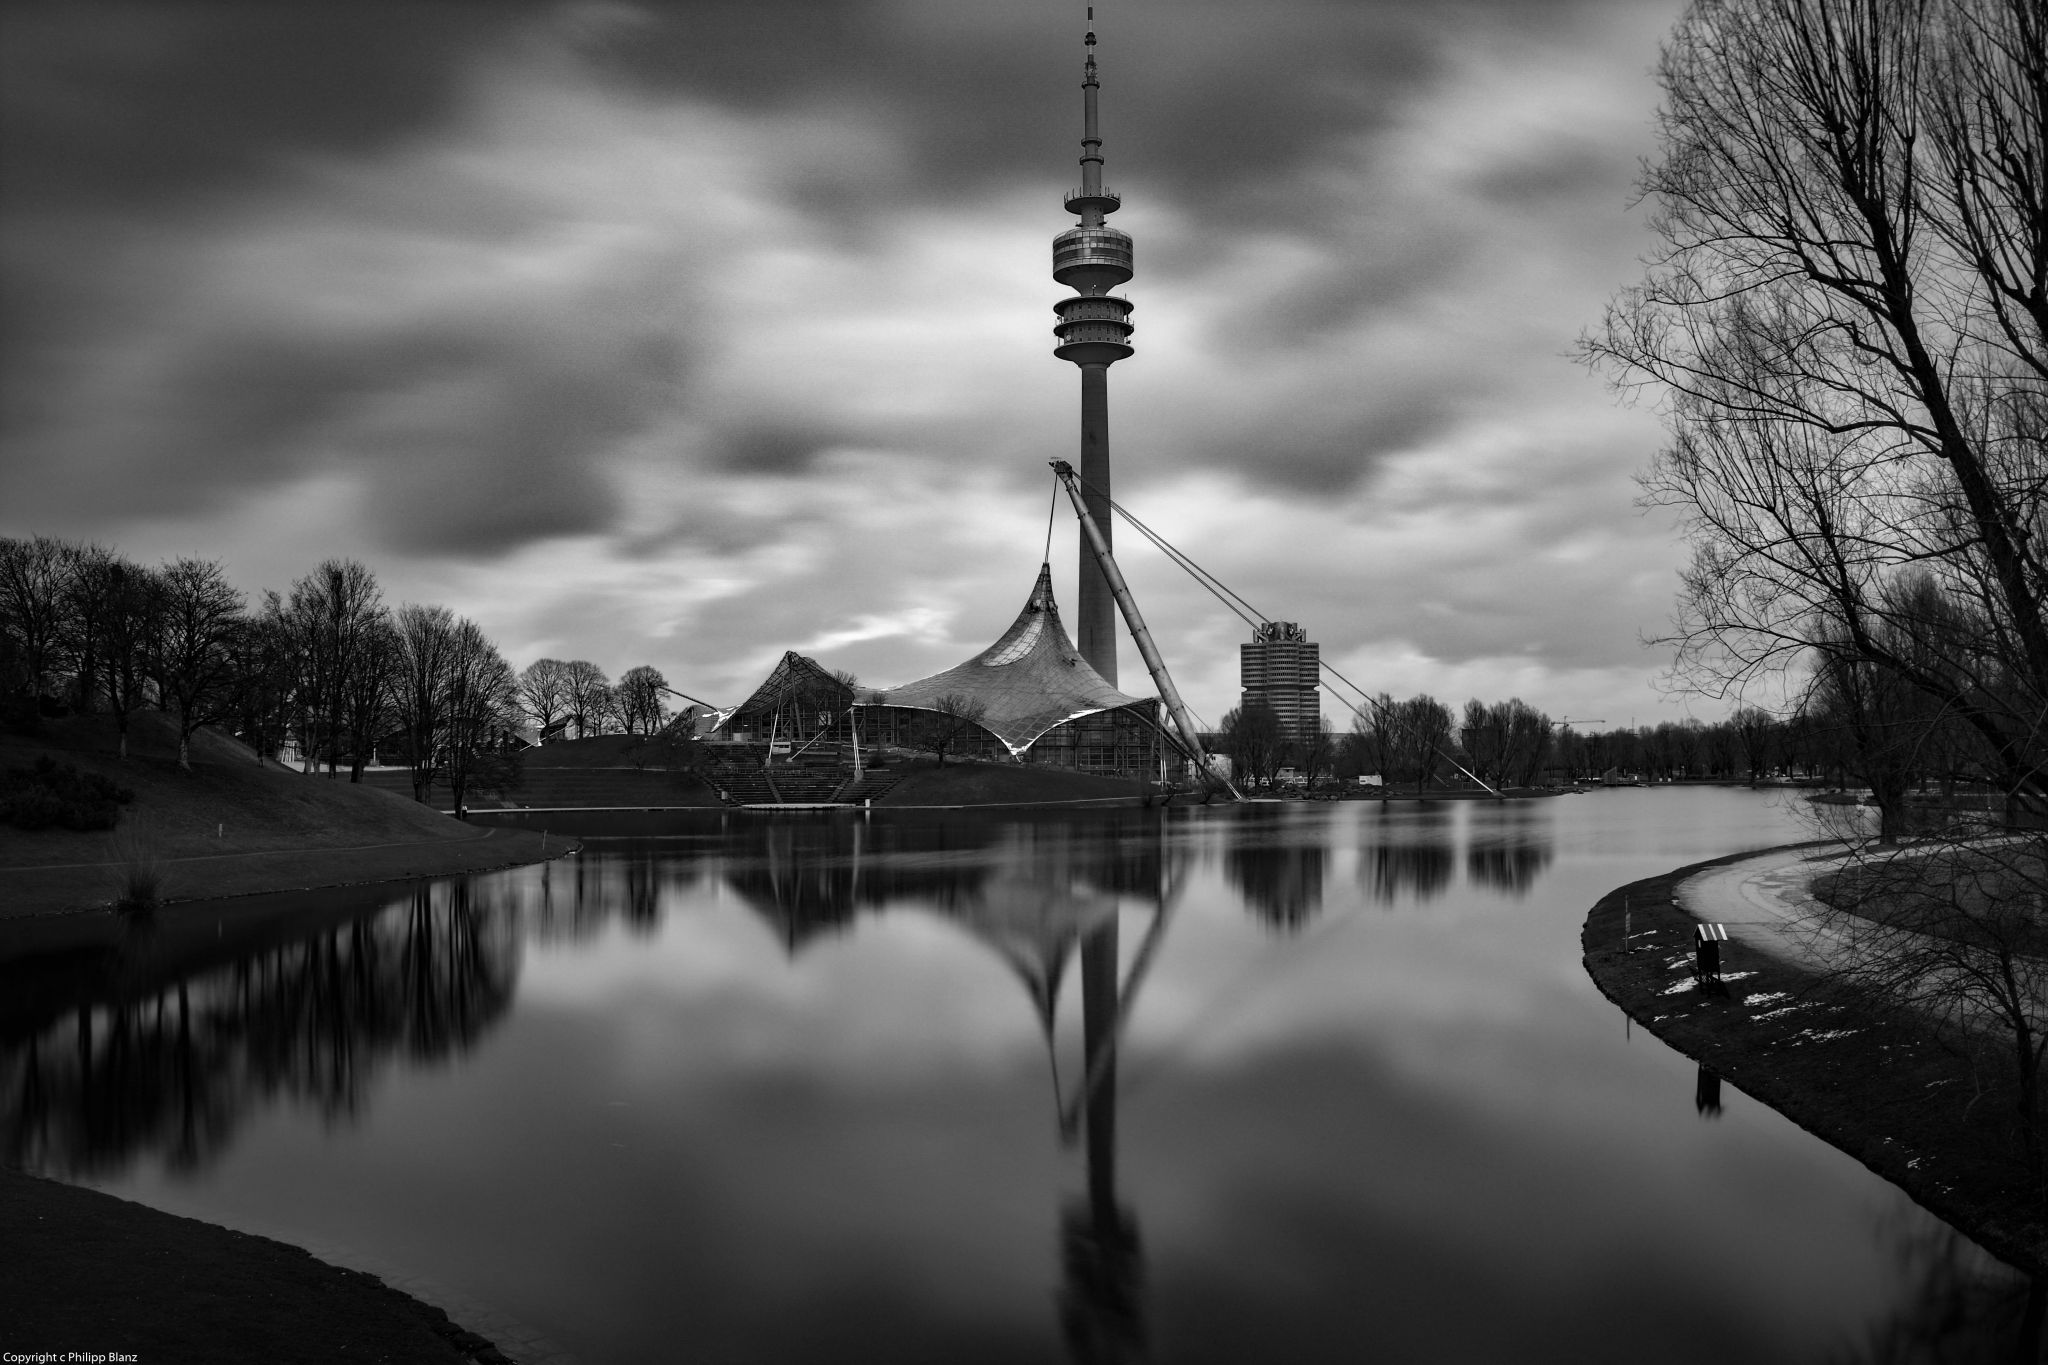 Olympiapark Munich, Germany